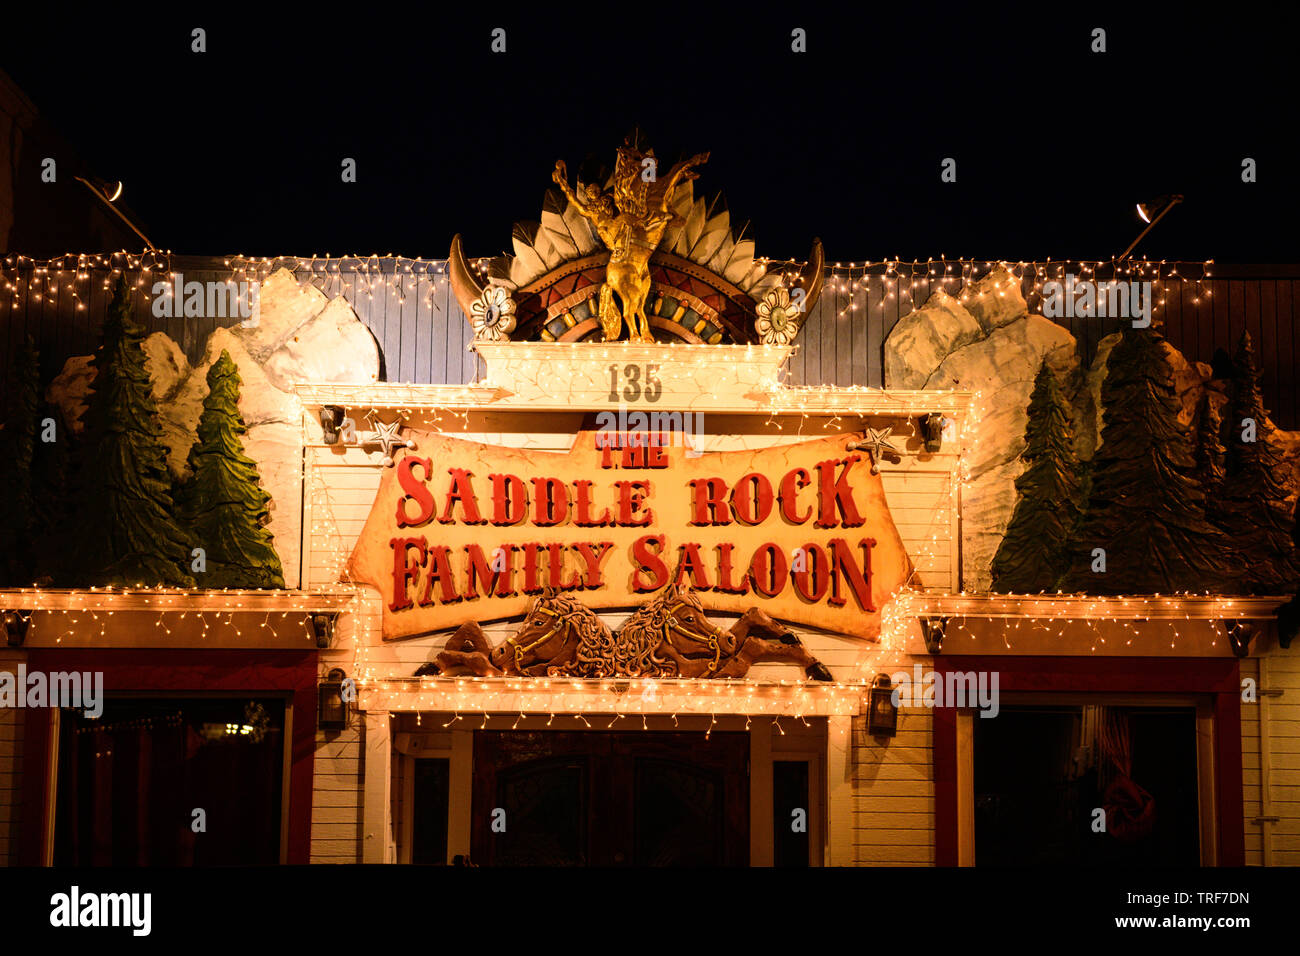 The Saddle Rock Family Saloon, in the western, USA town of Jackson, Wyoming, a popular tourist stop near both Teton's National Park, and Yellowstone N - Stock Image